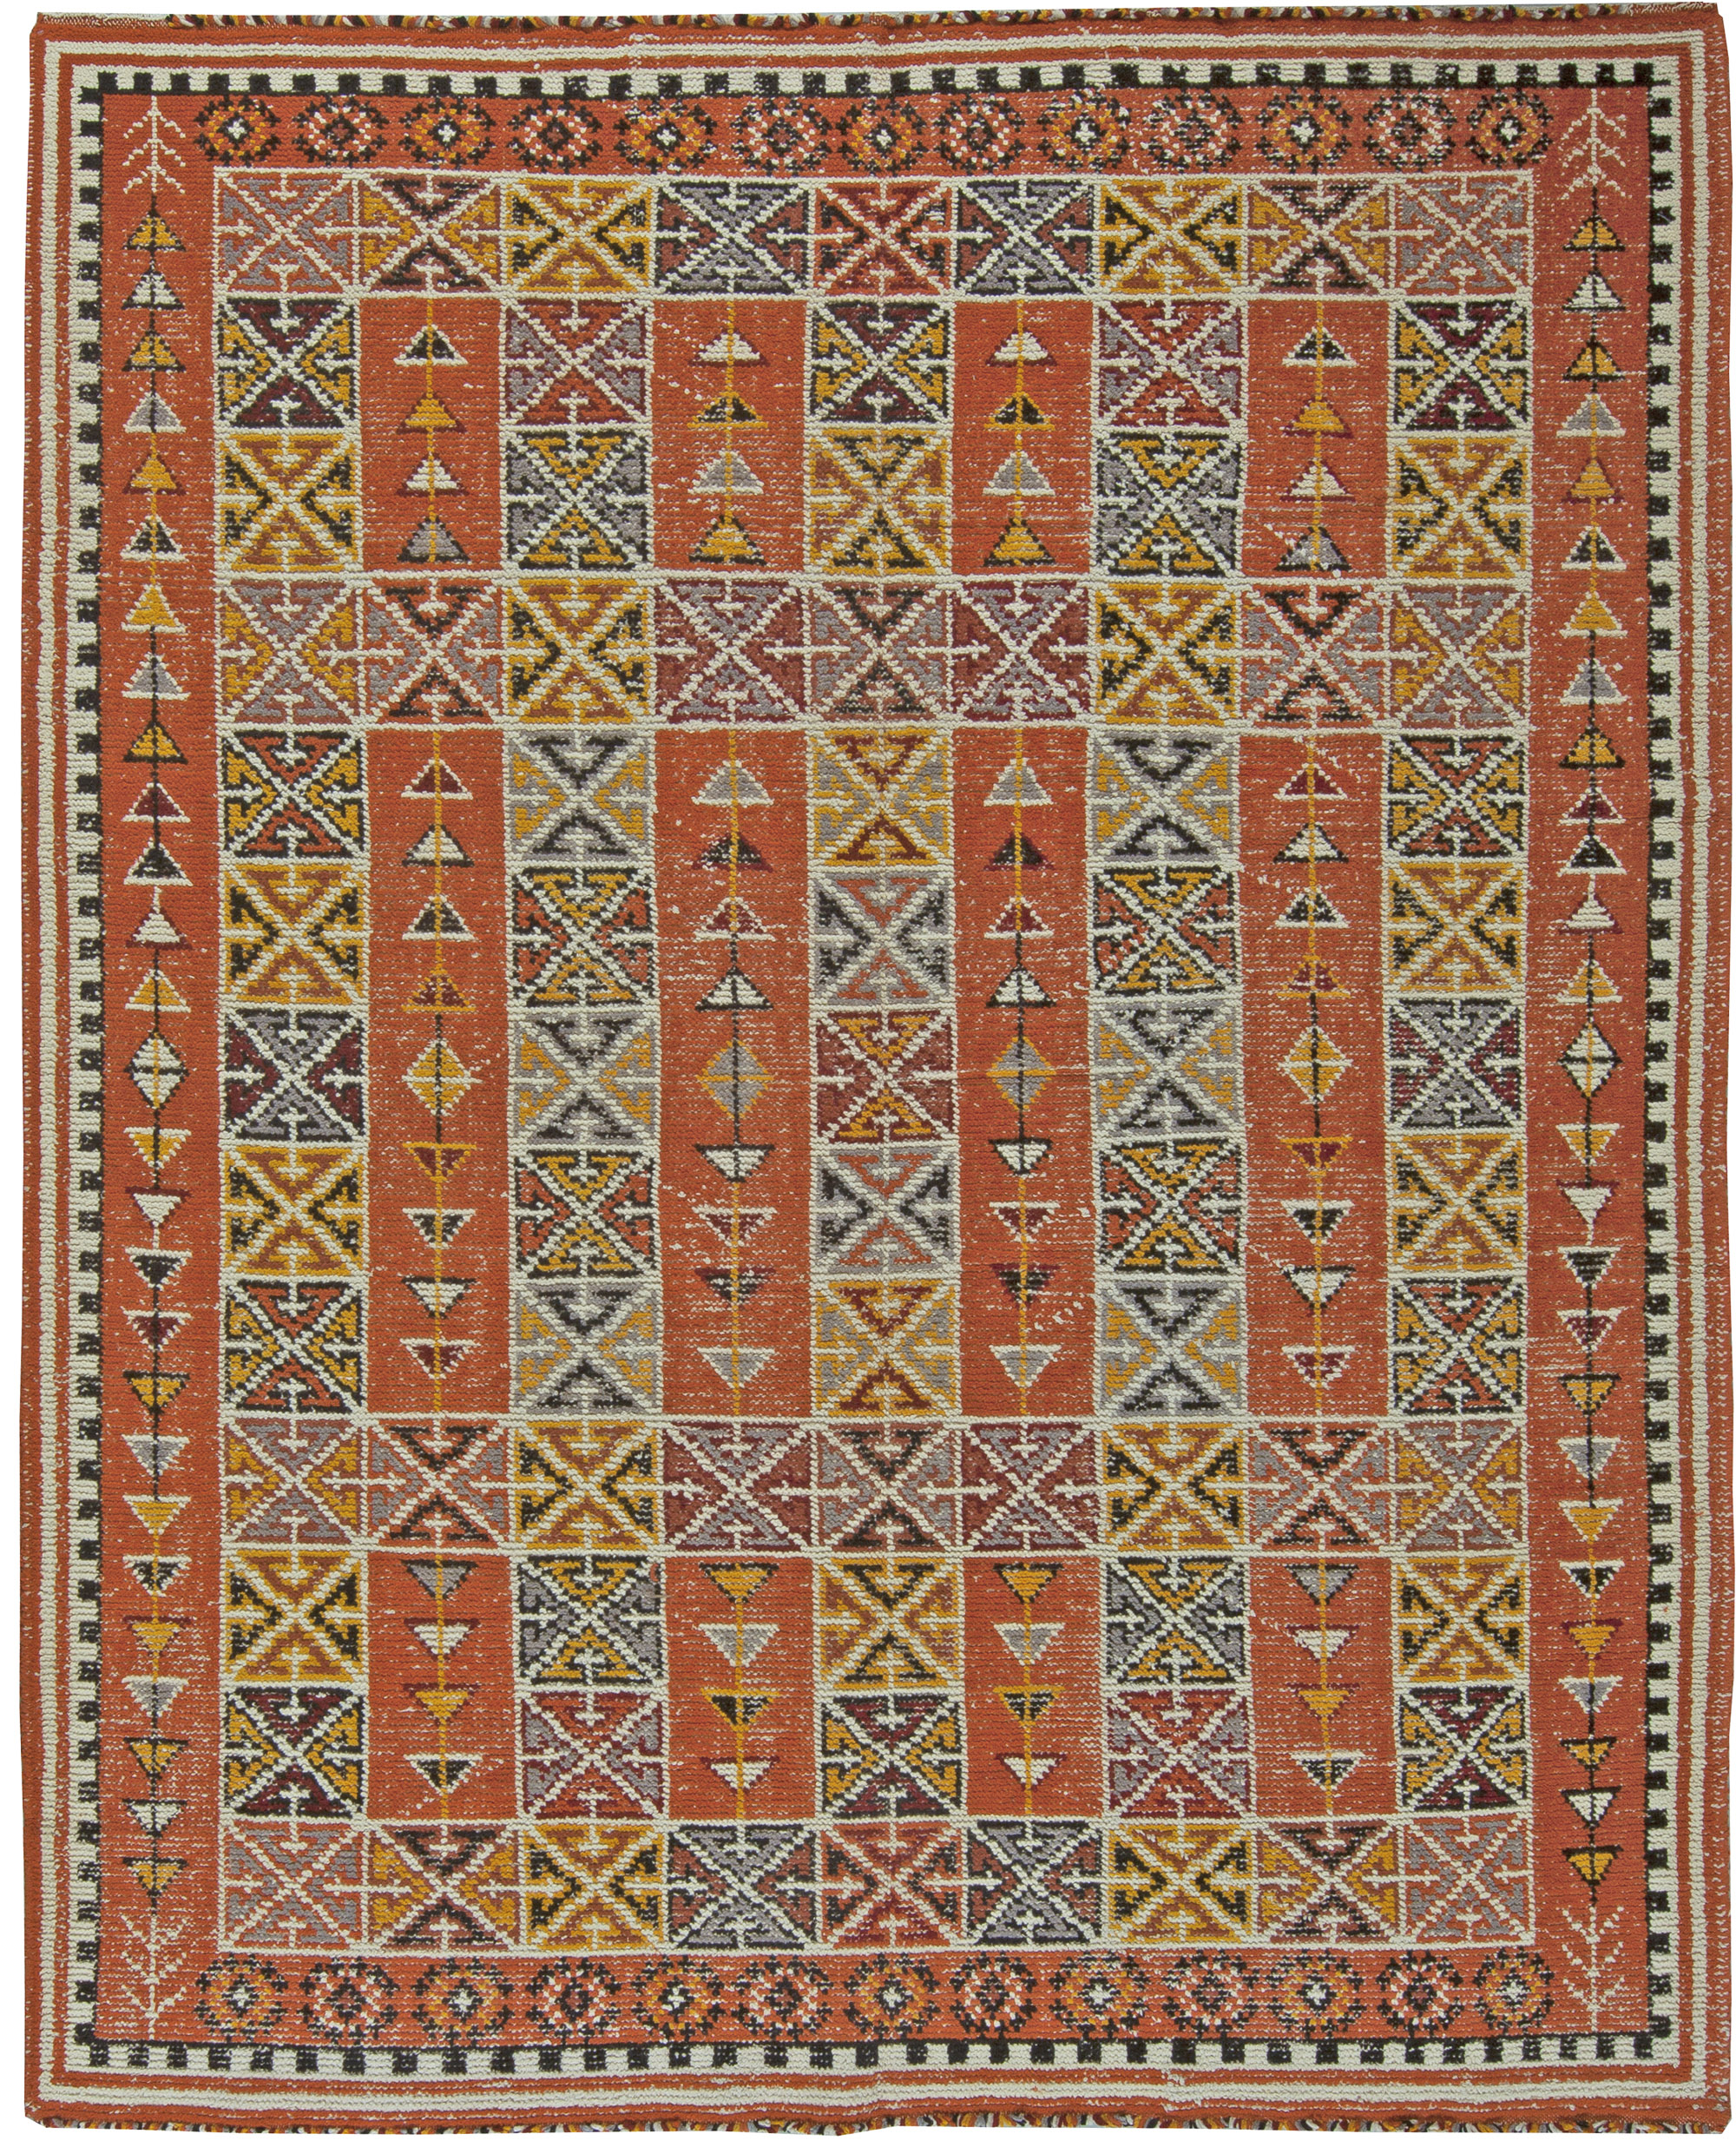 Vintage Moroccan Rug Bb5507 By Dlb